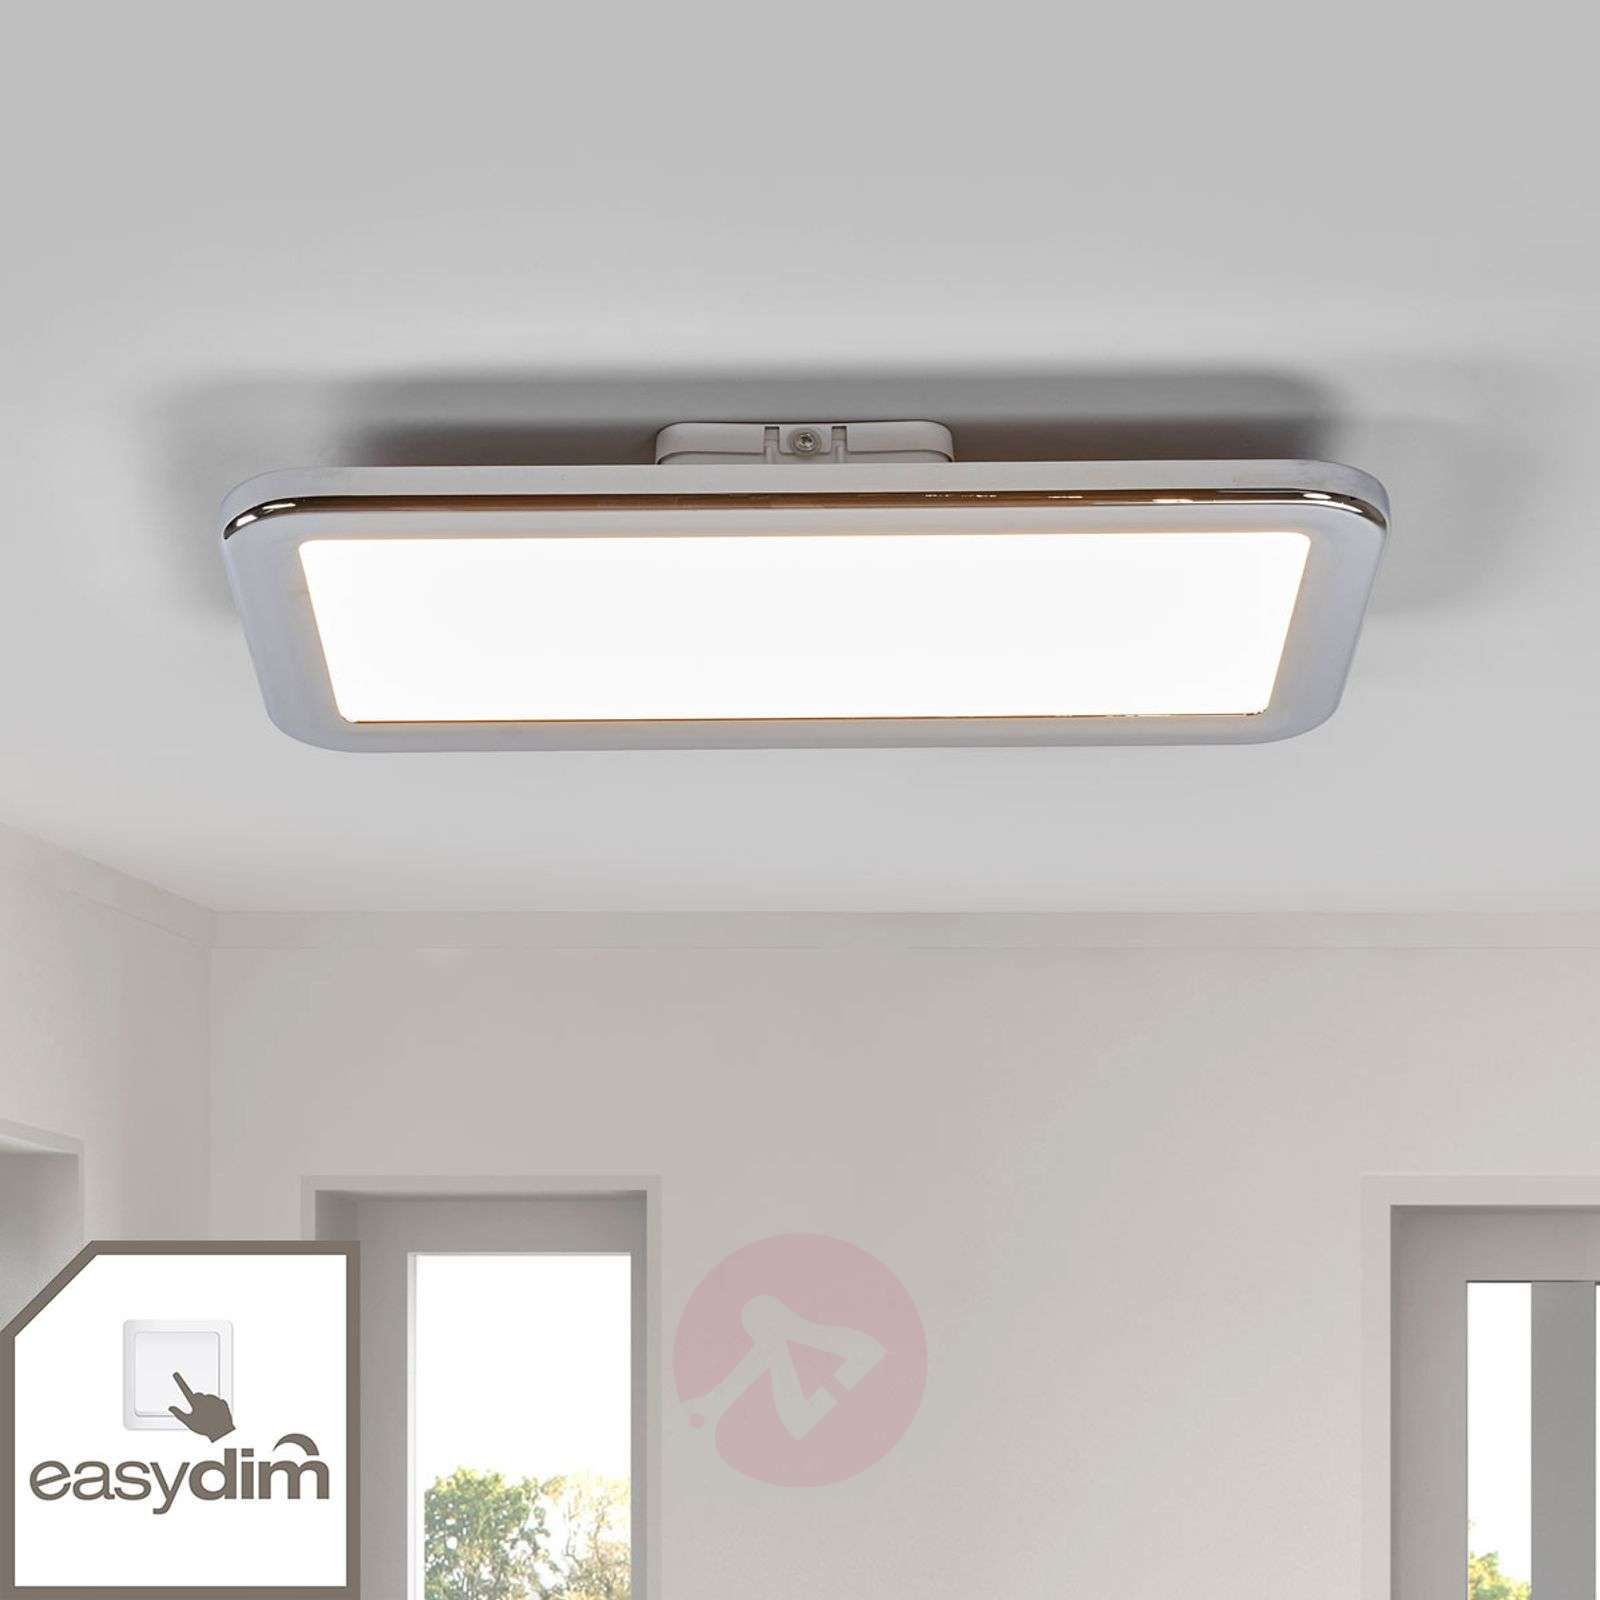 Filina chrome LED bathroom ceiling light, Easydim-1558103-01